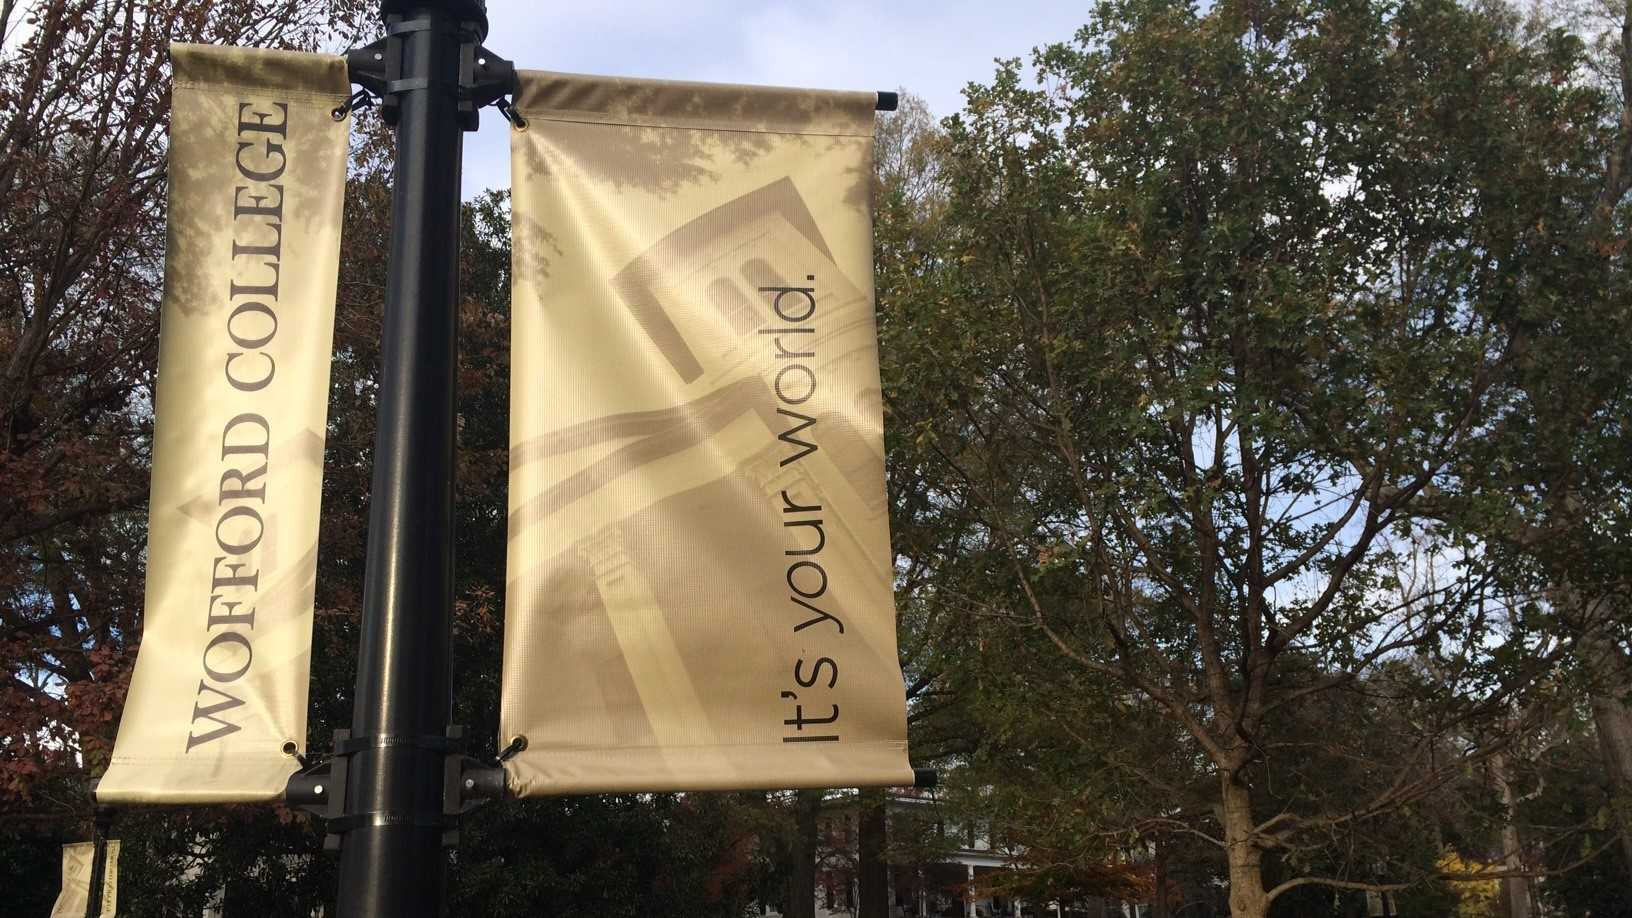 A student at Wofford College is preparing to spend four months studying in Paris.